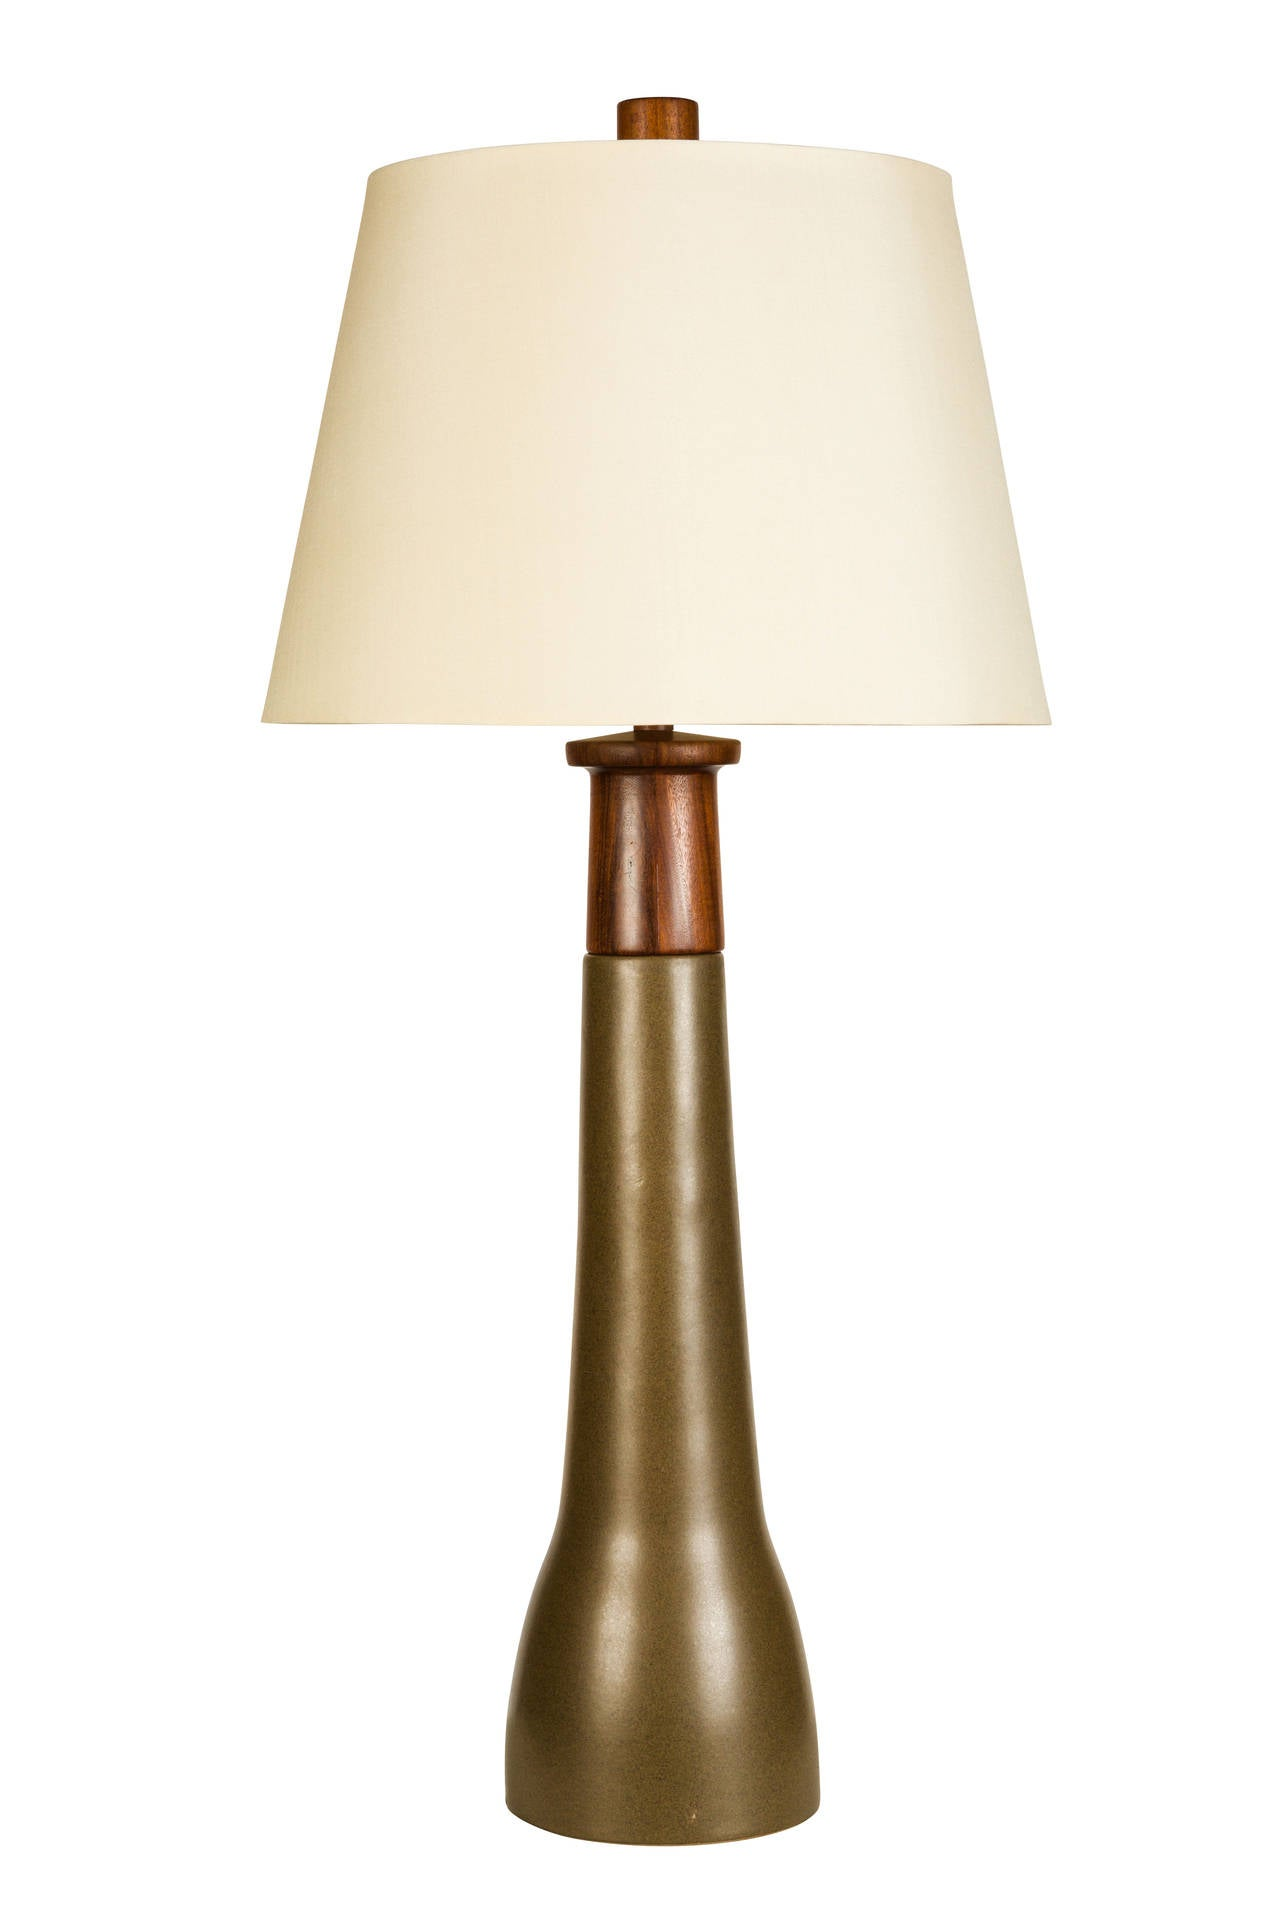 Tall Martz Table Lamp At 1stdibs